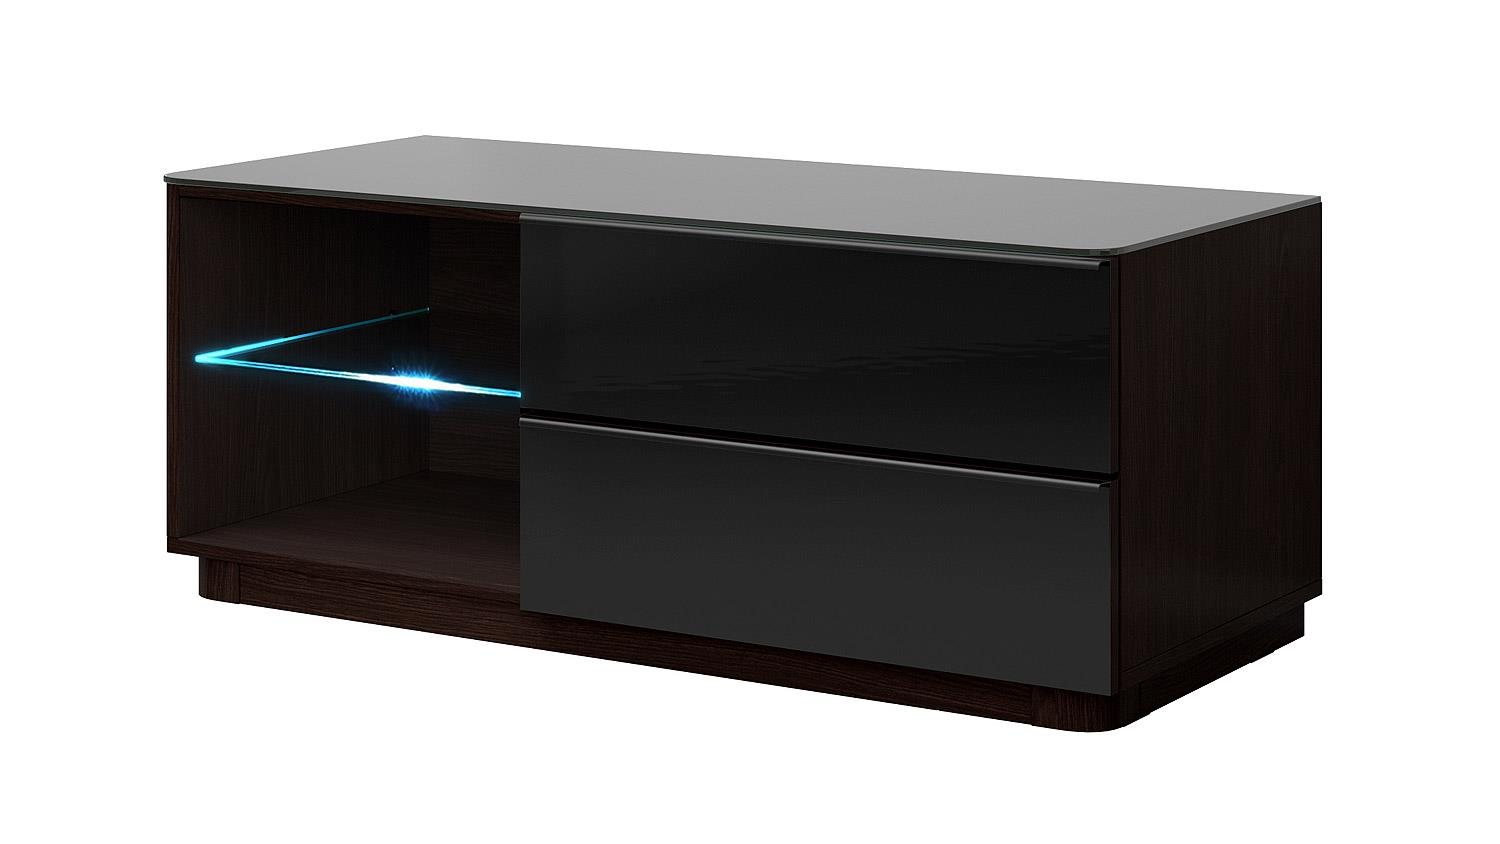 tv kommode togos wm klein glas schwarz wenge inkl led. Black Bedroom Furniture Sets. Home Design Ideas